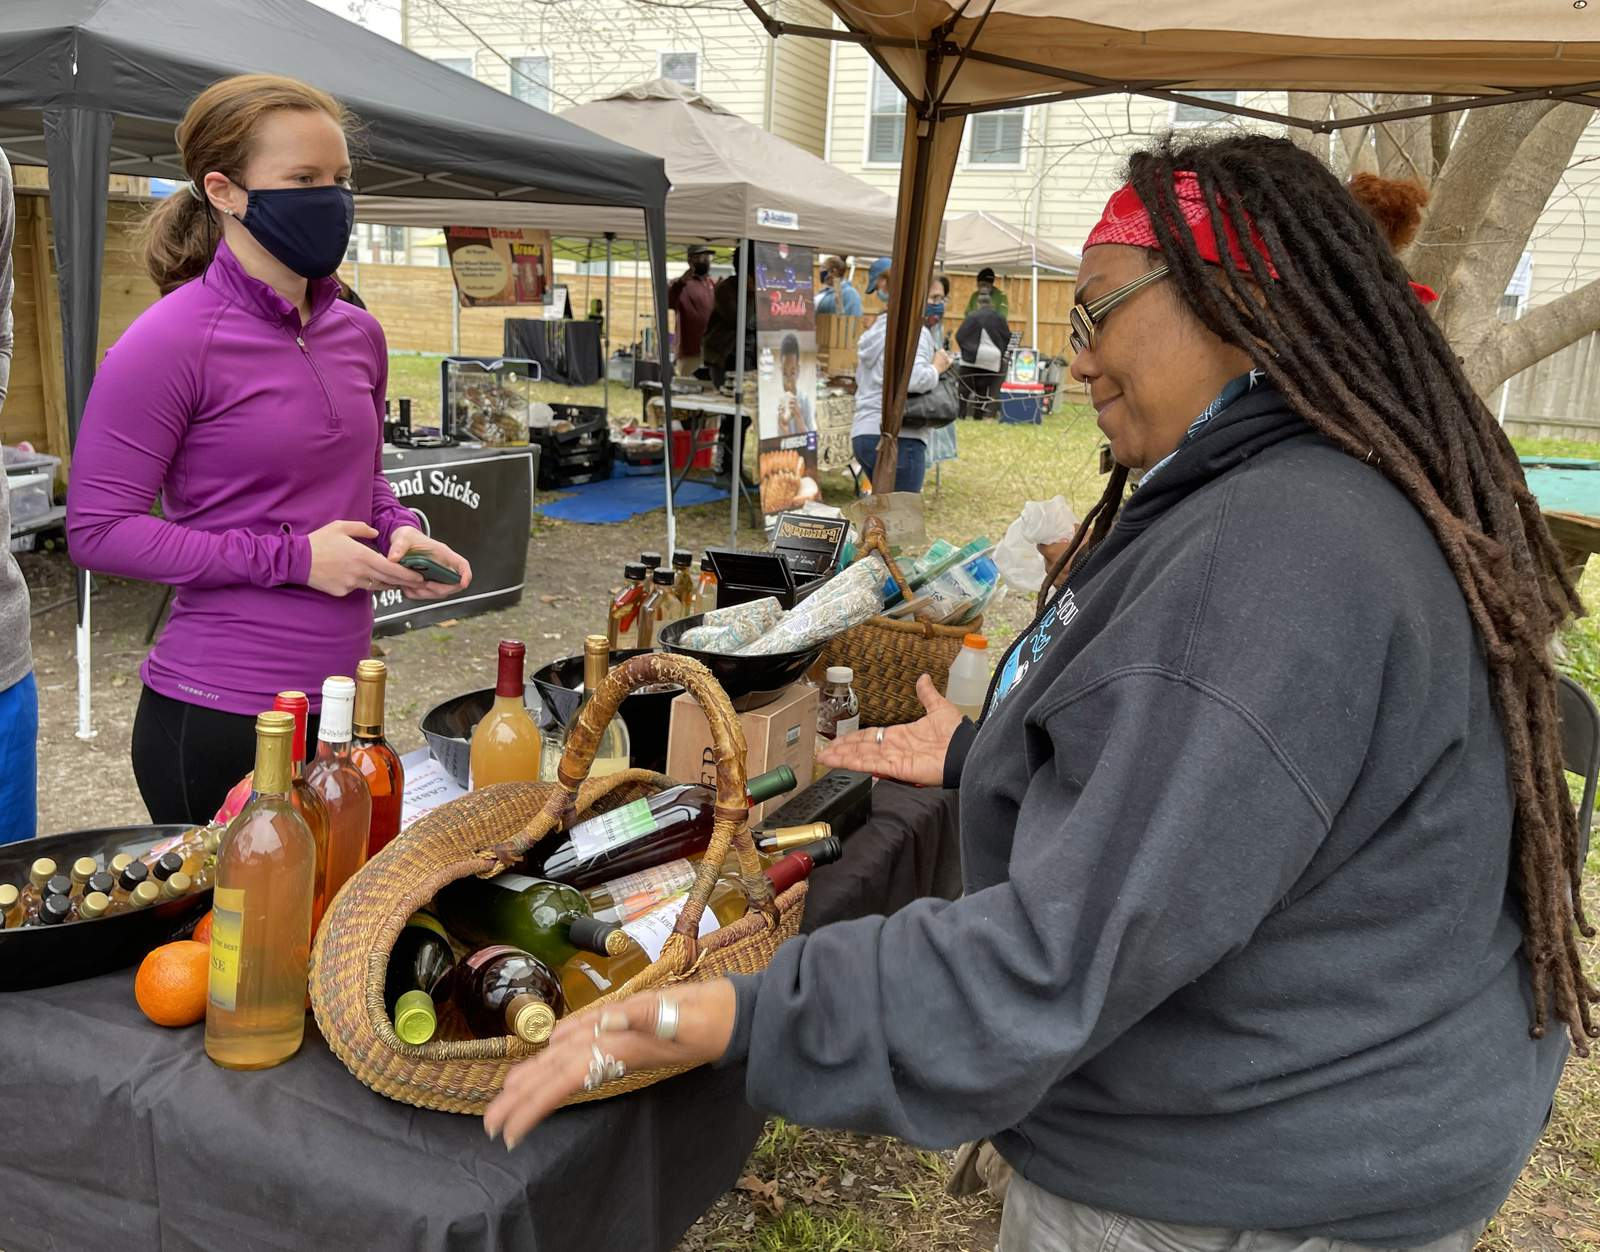 Shoppers and vendors at the Freedmen's Town Market.